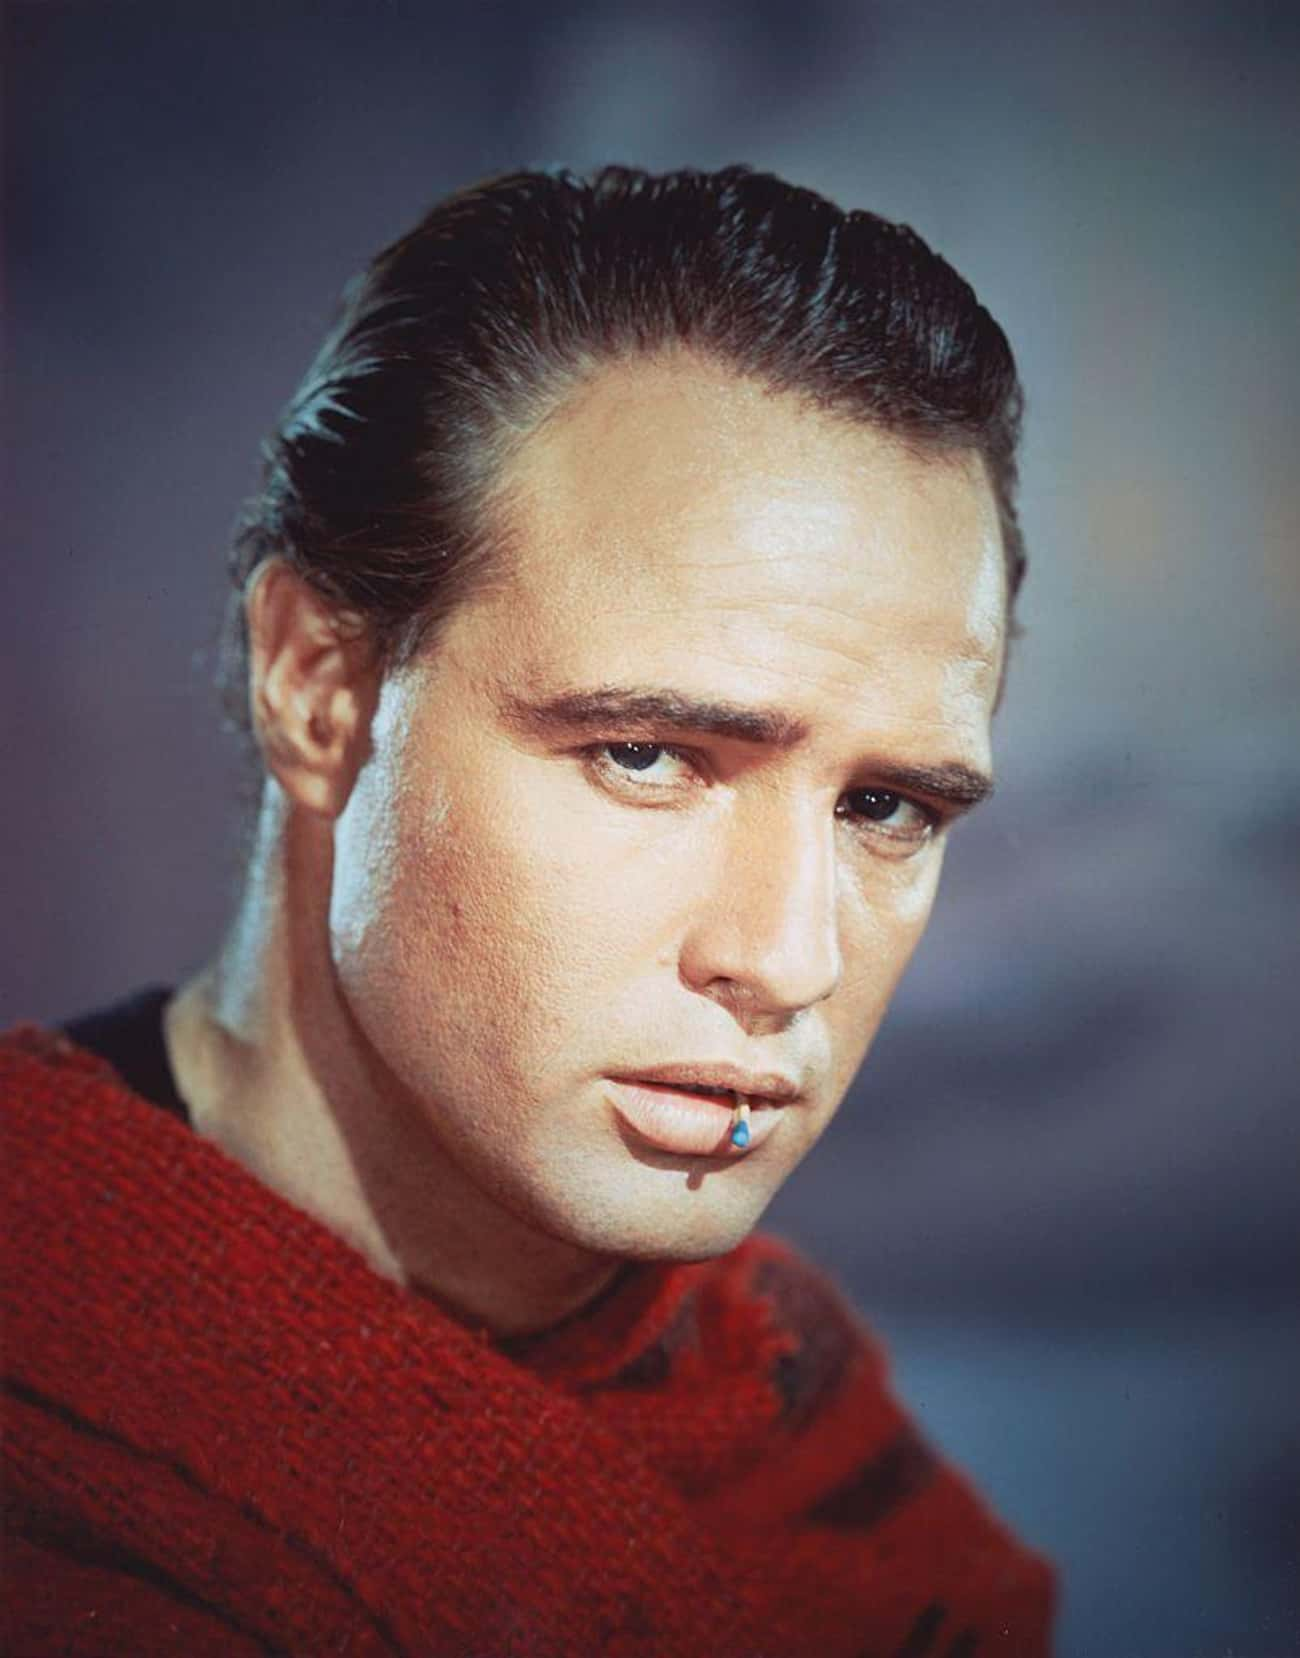 Marlon Brando is listed (or ranked) 3 on the list 34 Famous Movie Stars of the 1950s